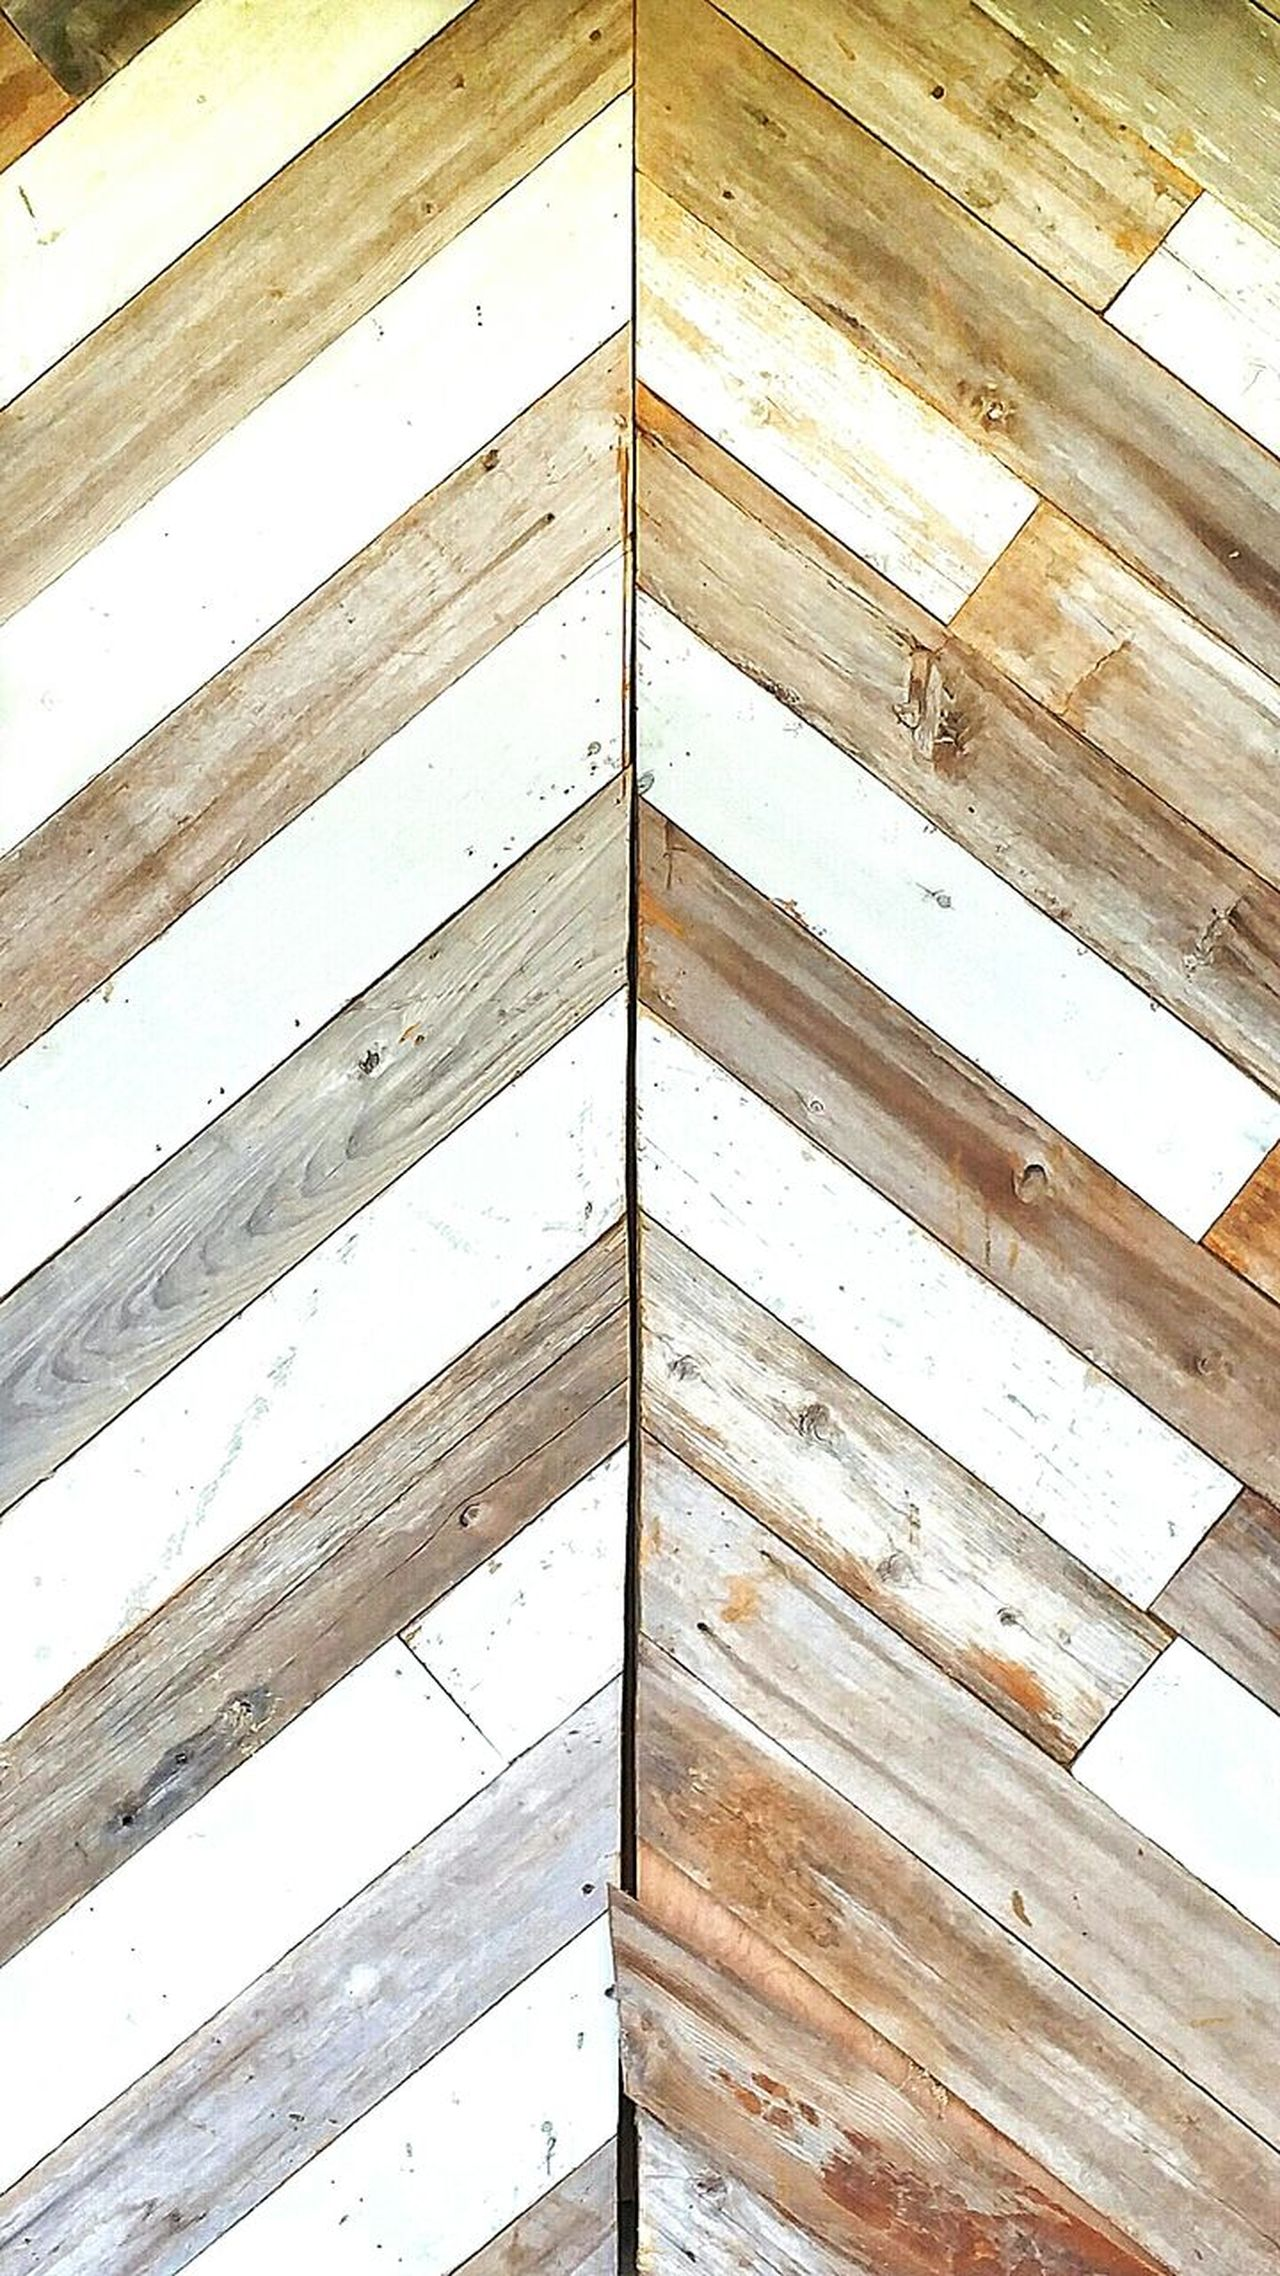 Striped Pattern Full Frame Backgrounds Indoors  Collage No People Day Close-up Rough Texture Patterns Weathered Old Wood Art Is Everywhere Retro Styled Architecture Rotting Building Exterior Multi-layered Effect Painted Image Textured  Abstract Wooden Pattern Design Old Buildings Break The Mold